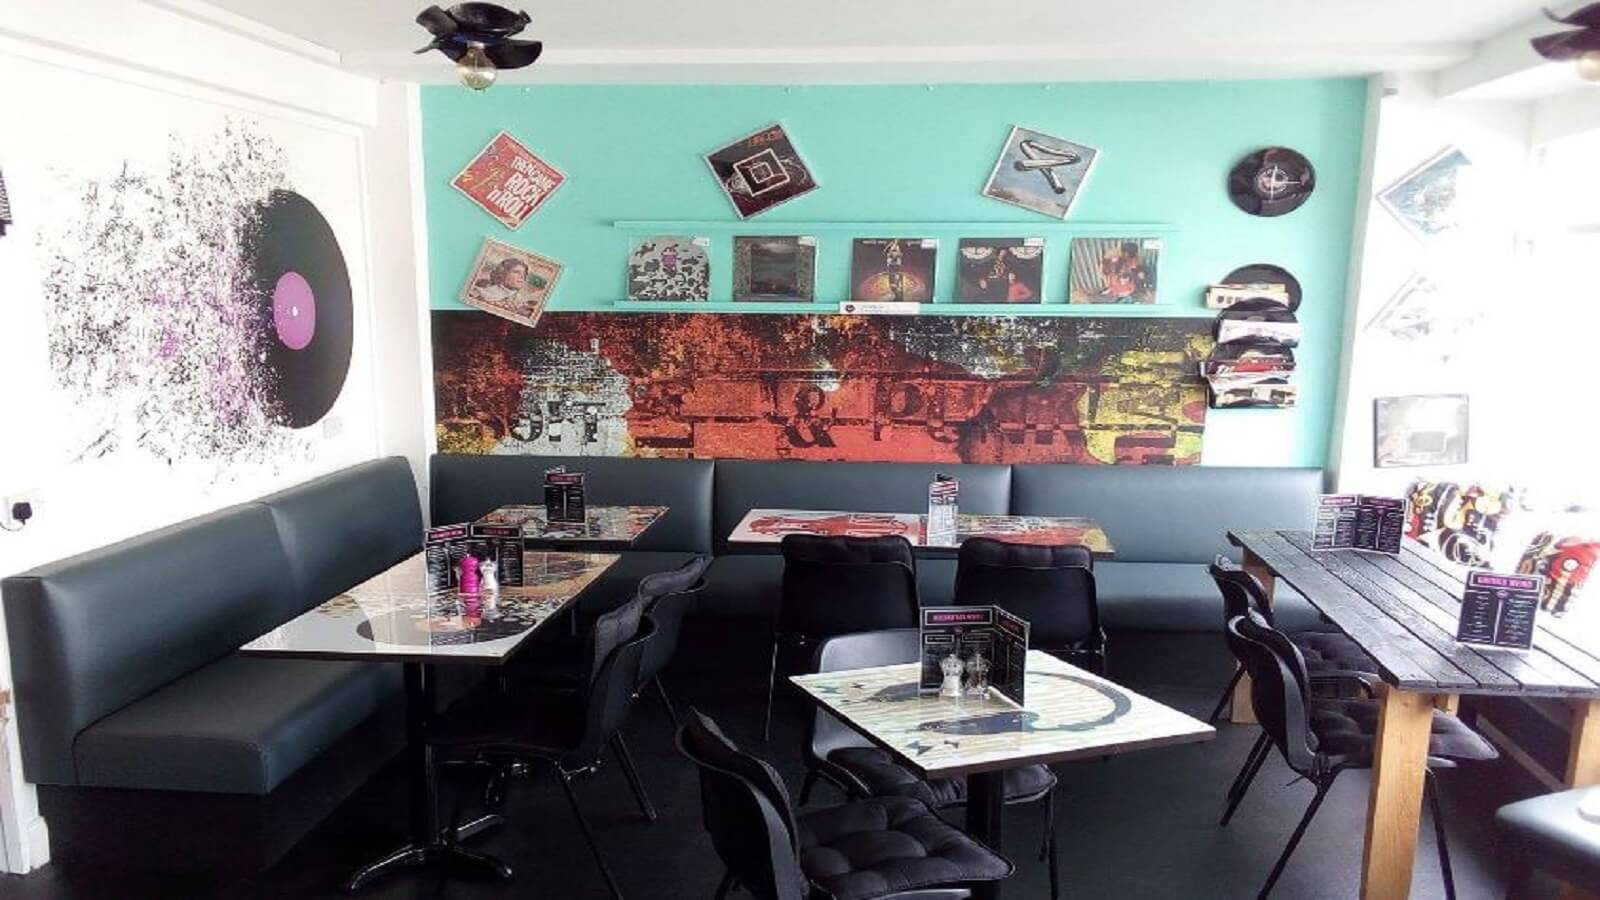 Viva-Vinyl Record Store & Cafe Brighton - 25% Off Total Bill With